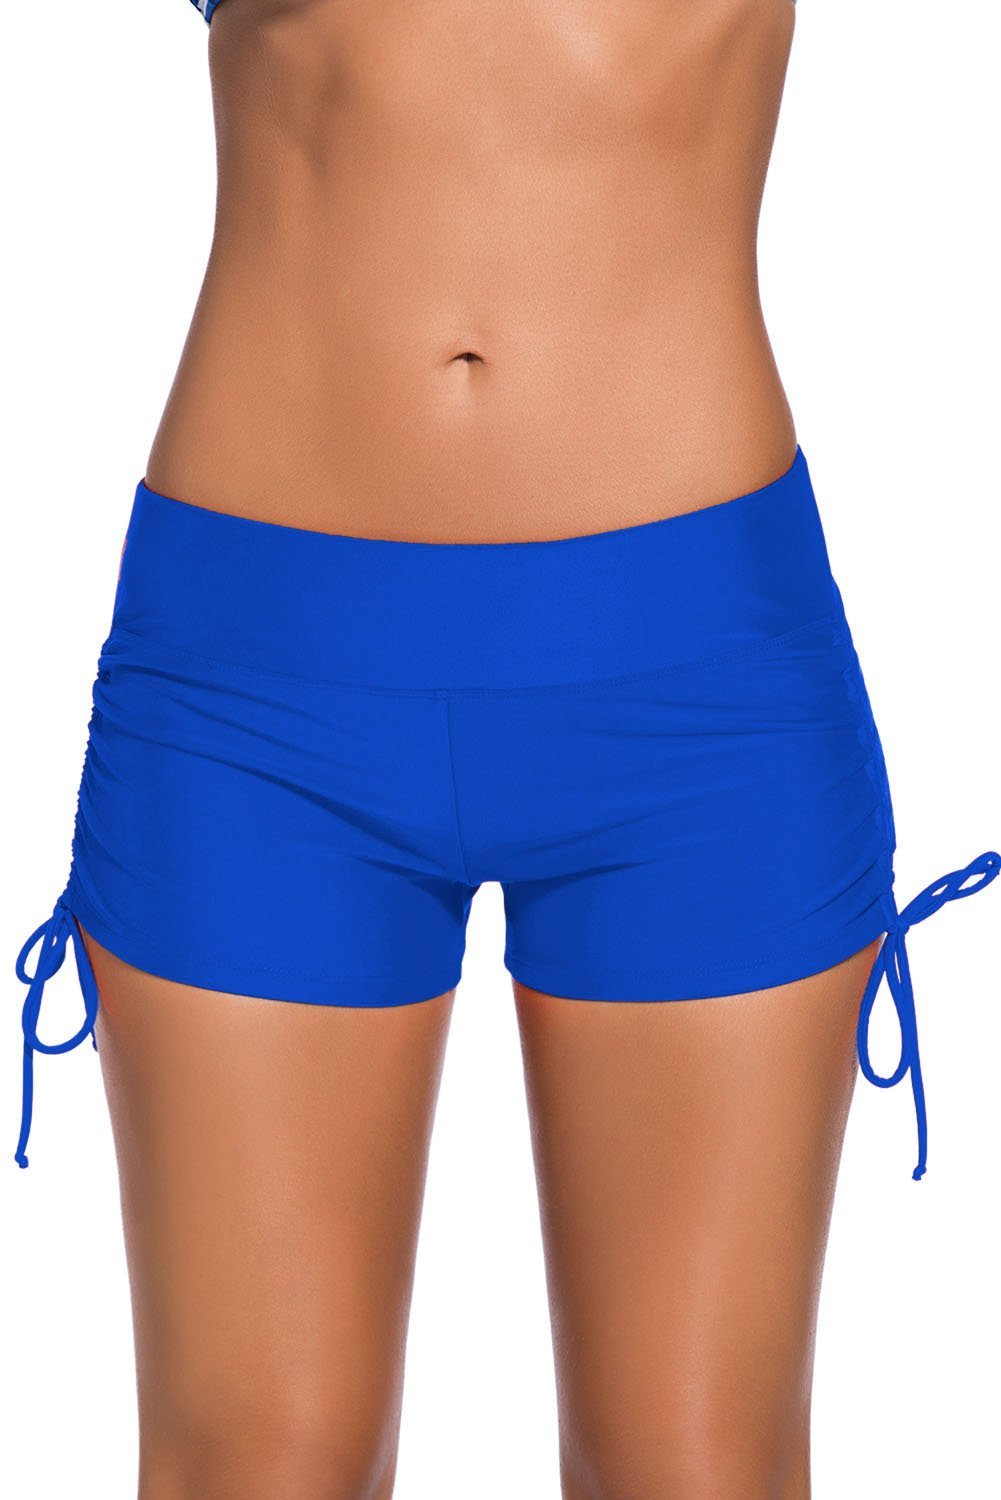 Womens Blue Adjustable Ties Swim Bottom Shorts